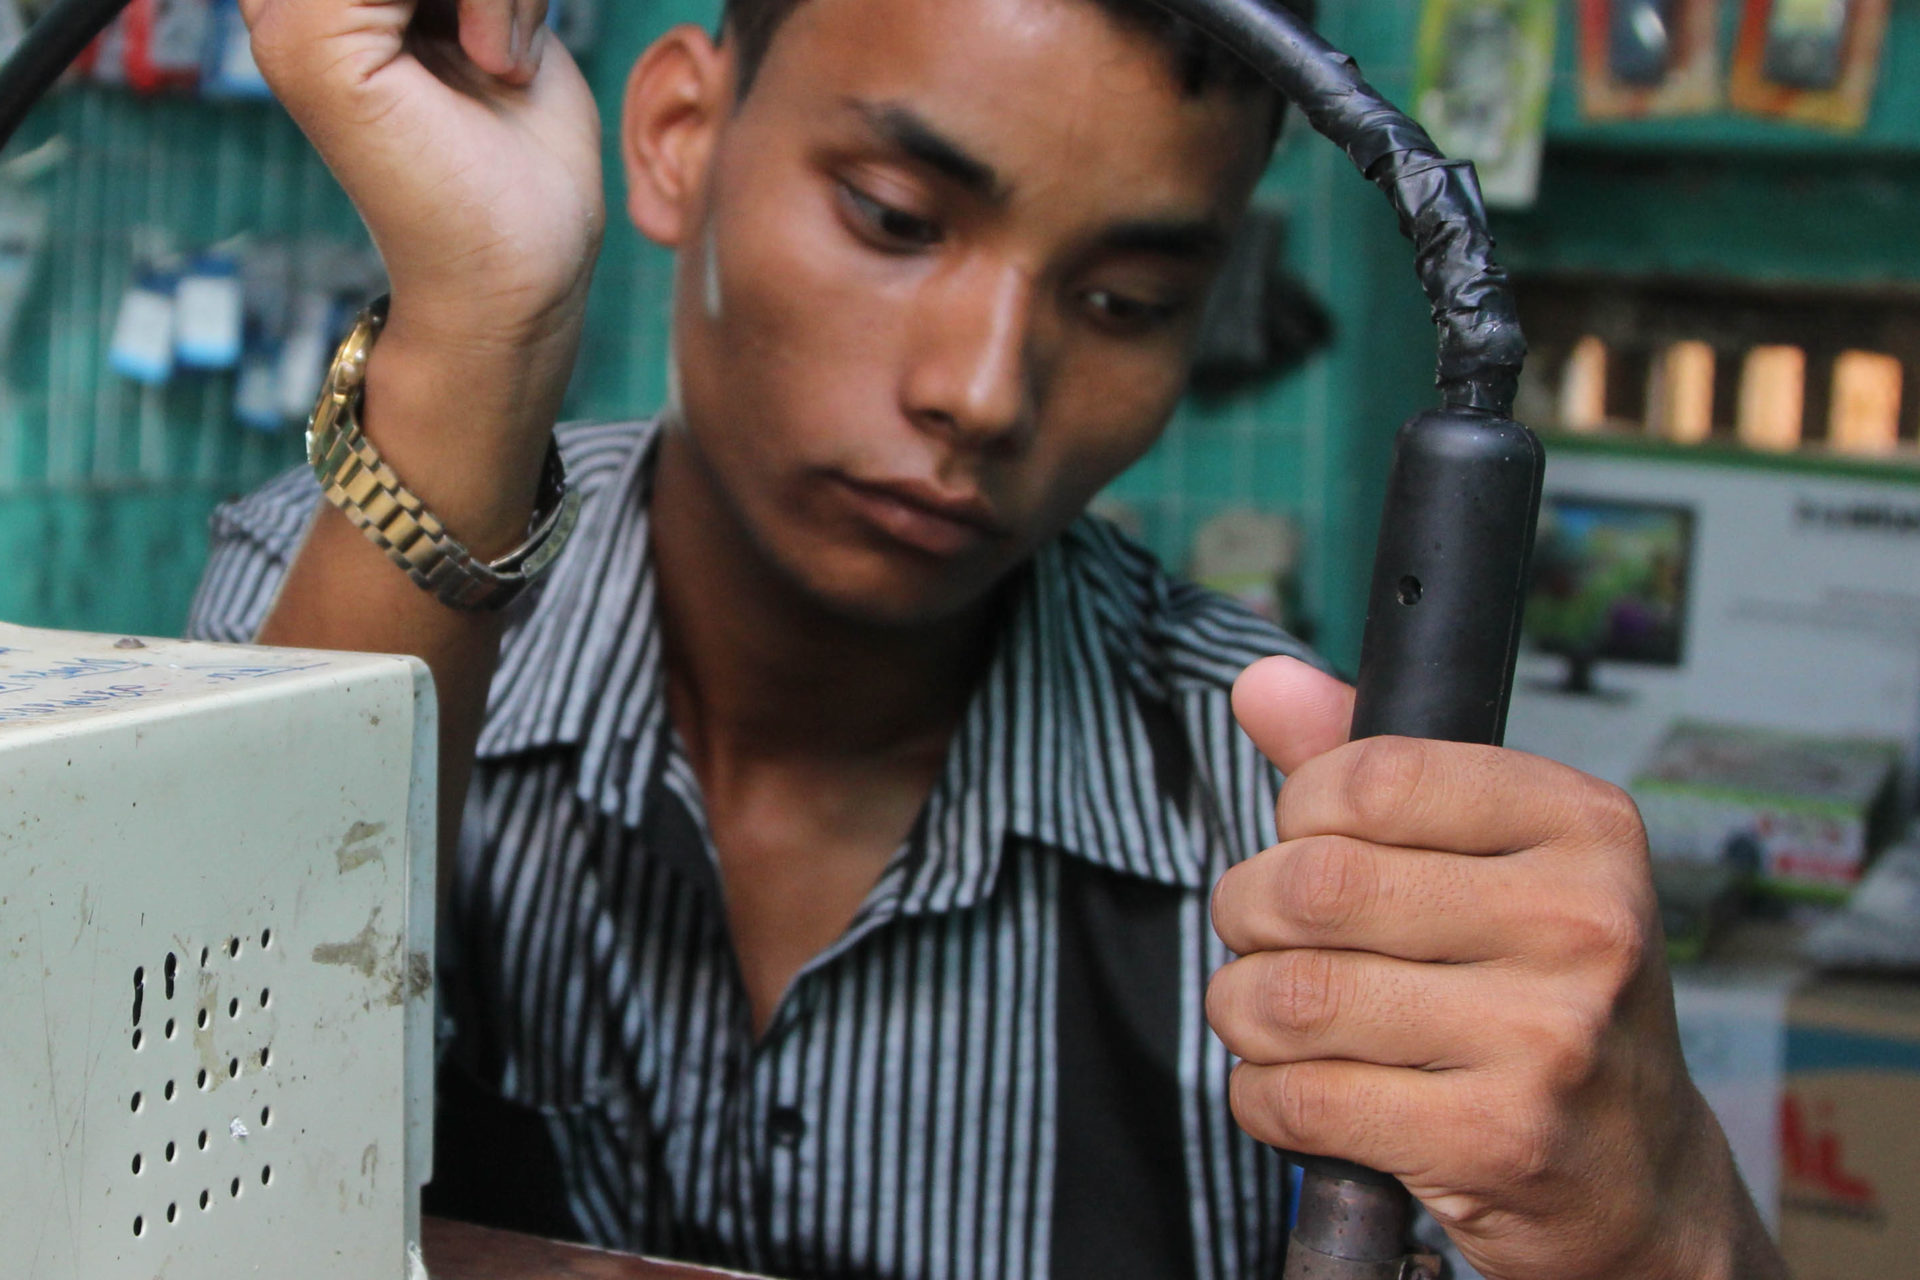 Handy-Verkäufer Nepal Mobile Phone Repair